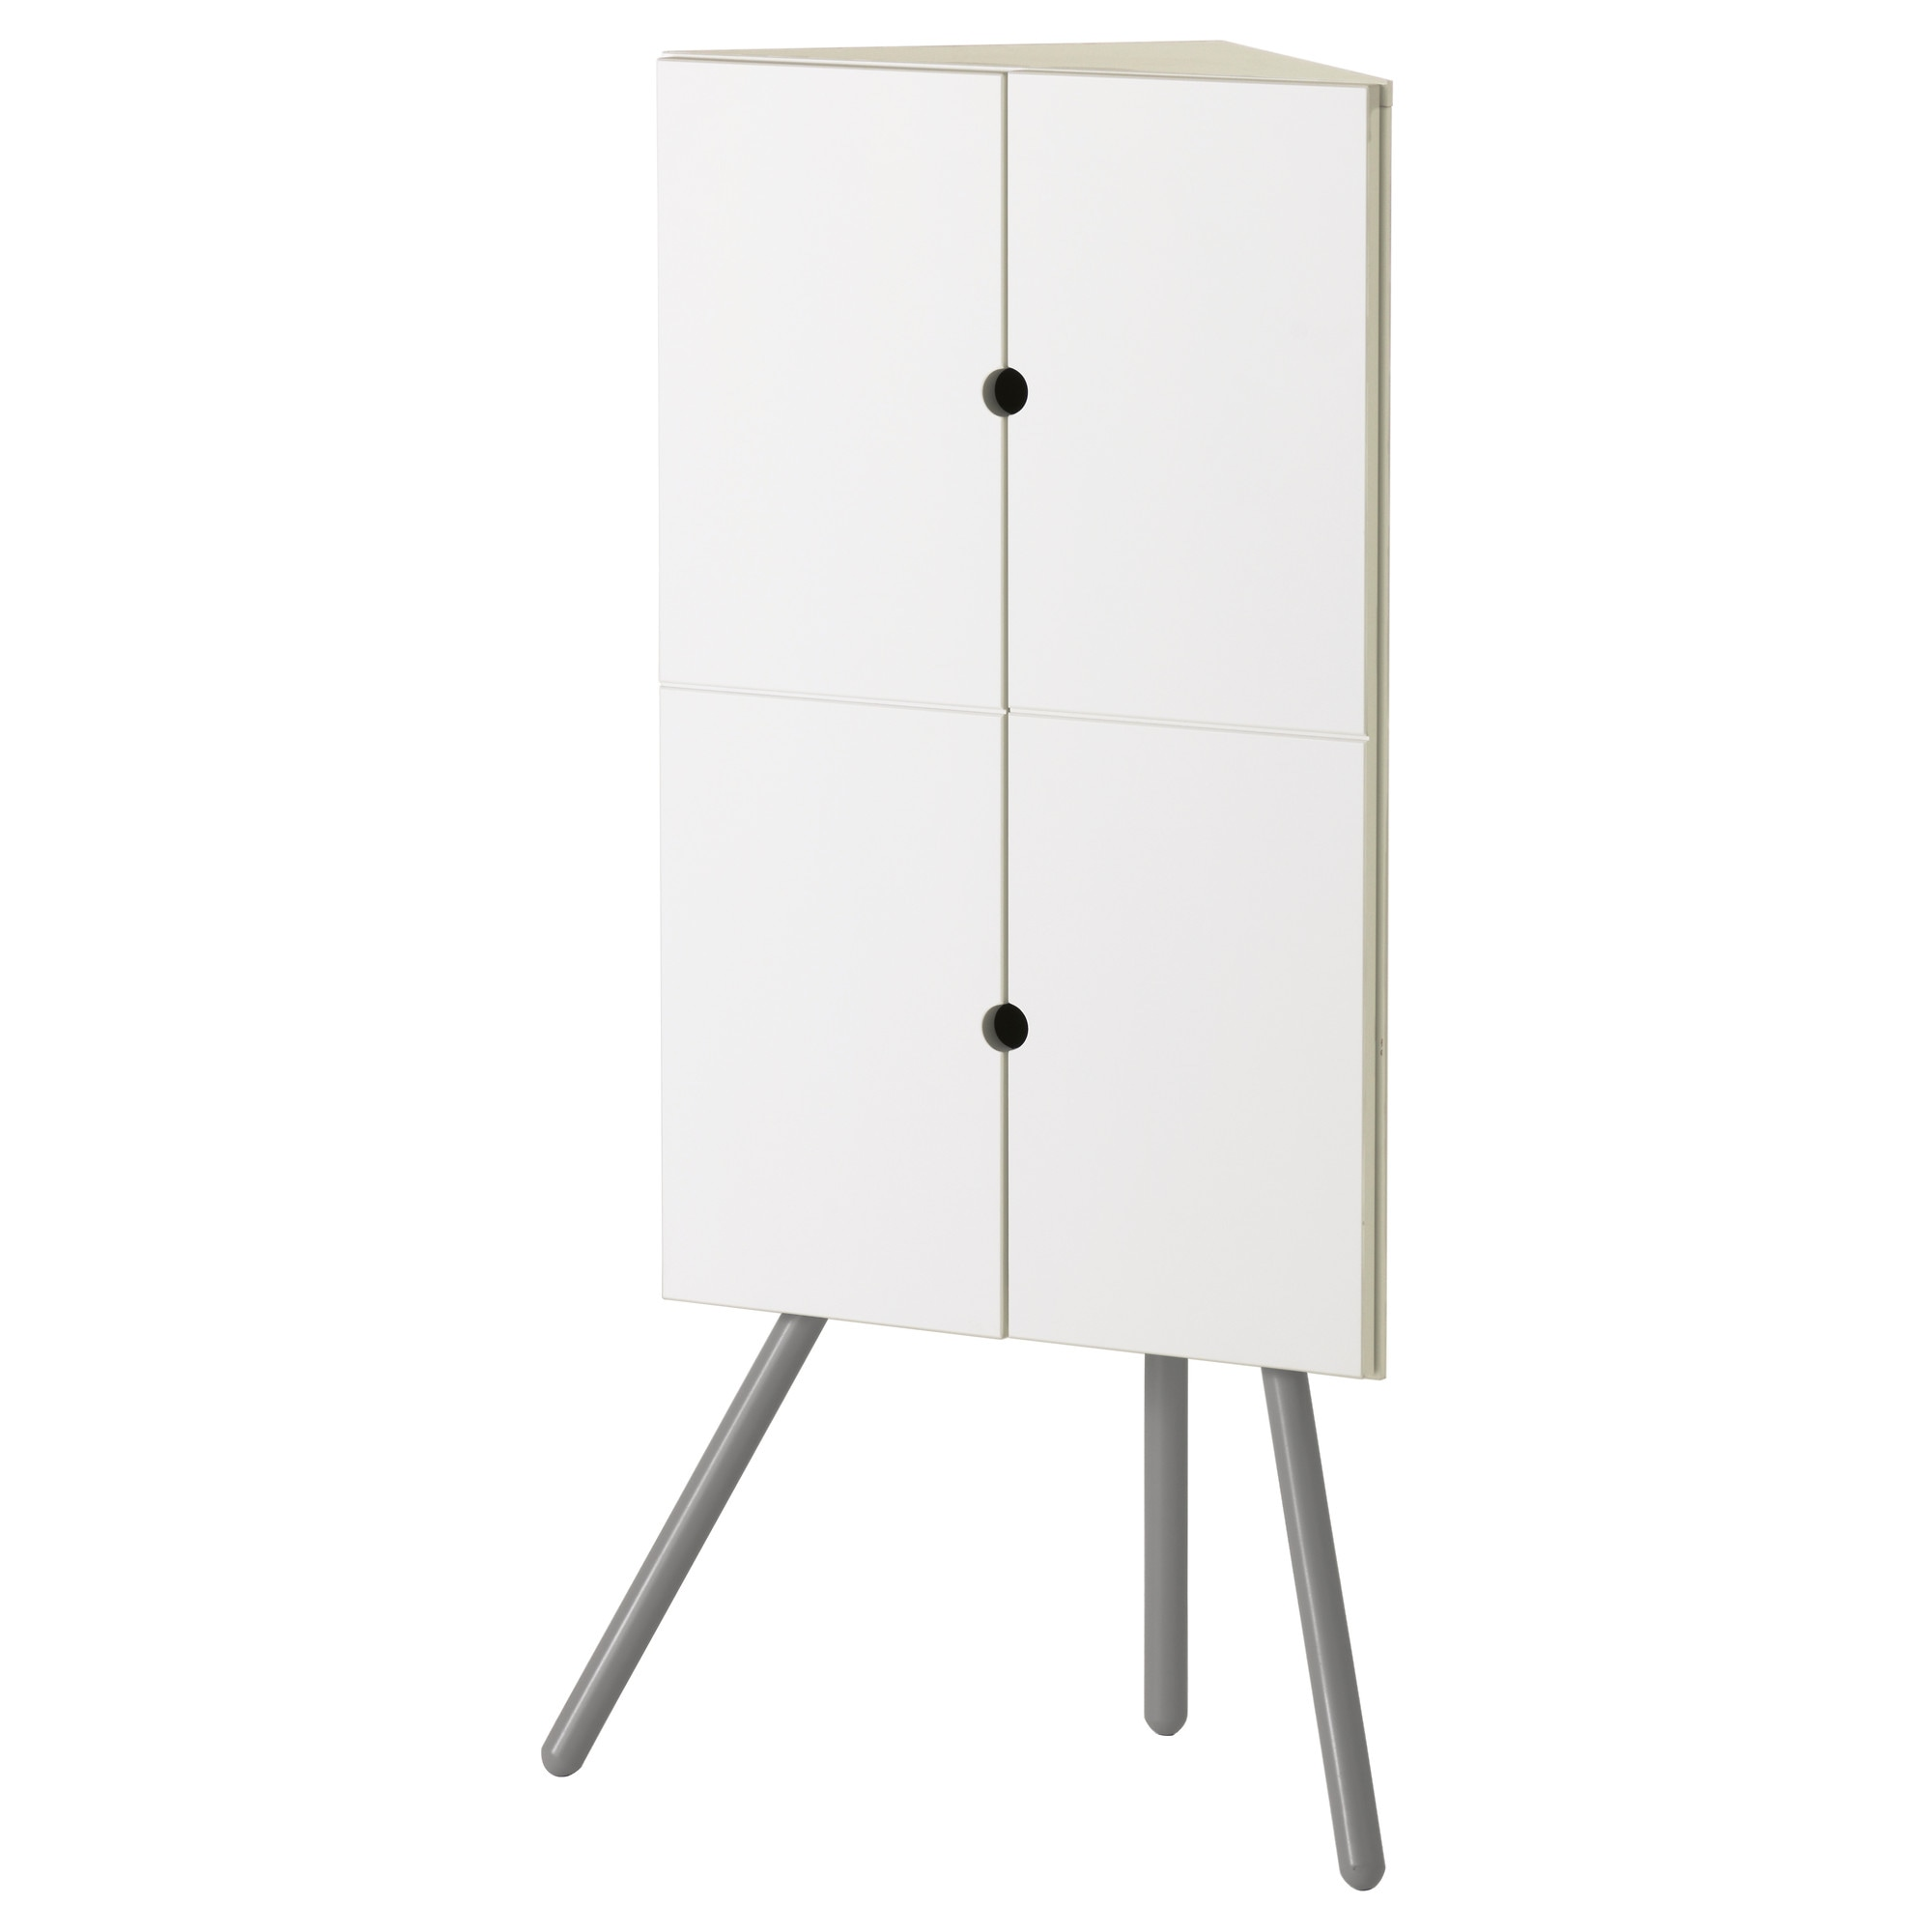 Meuble En Angle Ikea Fashion Designs # Meuble Vitrine D'Angle Ikea